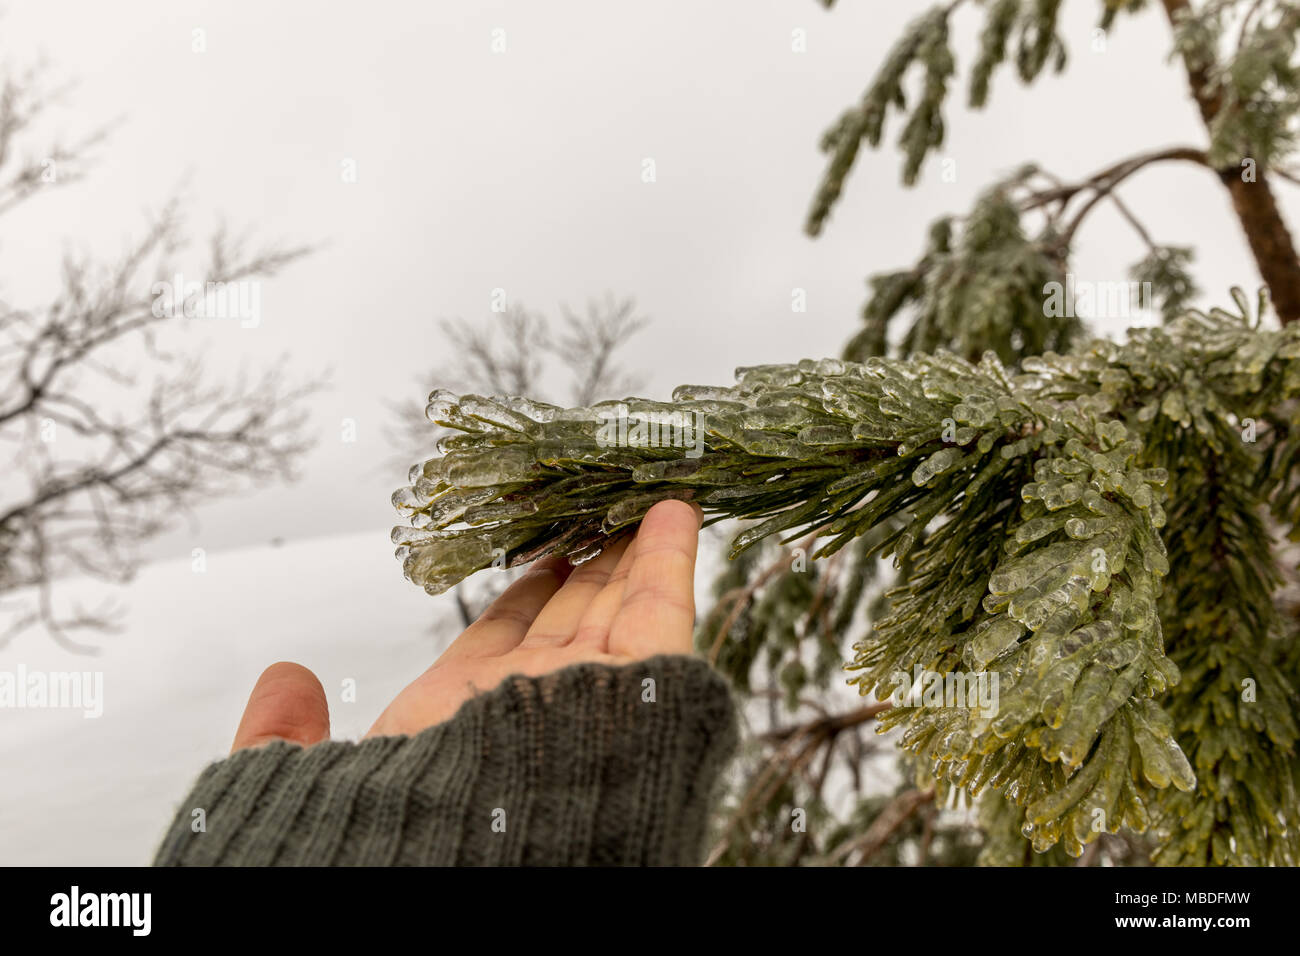 Hand touching the needles on a pine tree frozen during an ice storm. - Stock Image